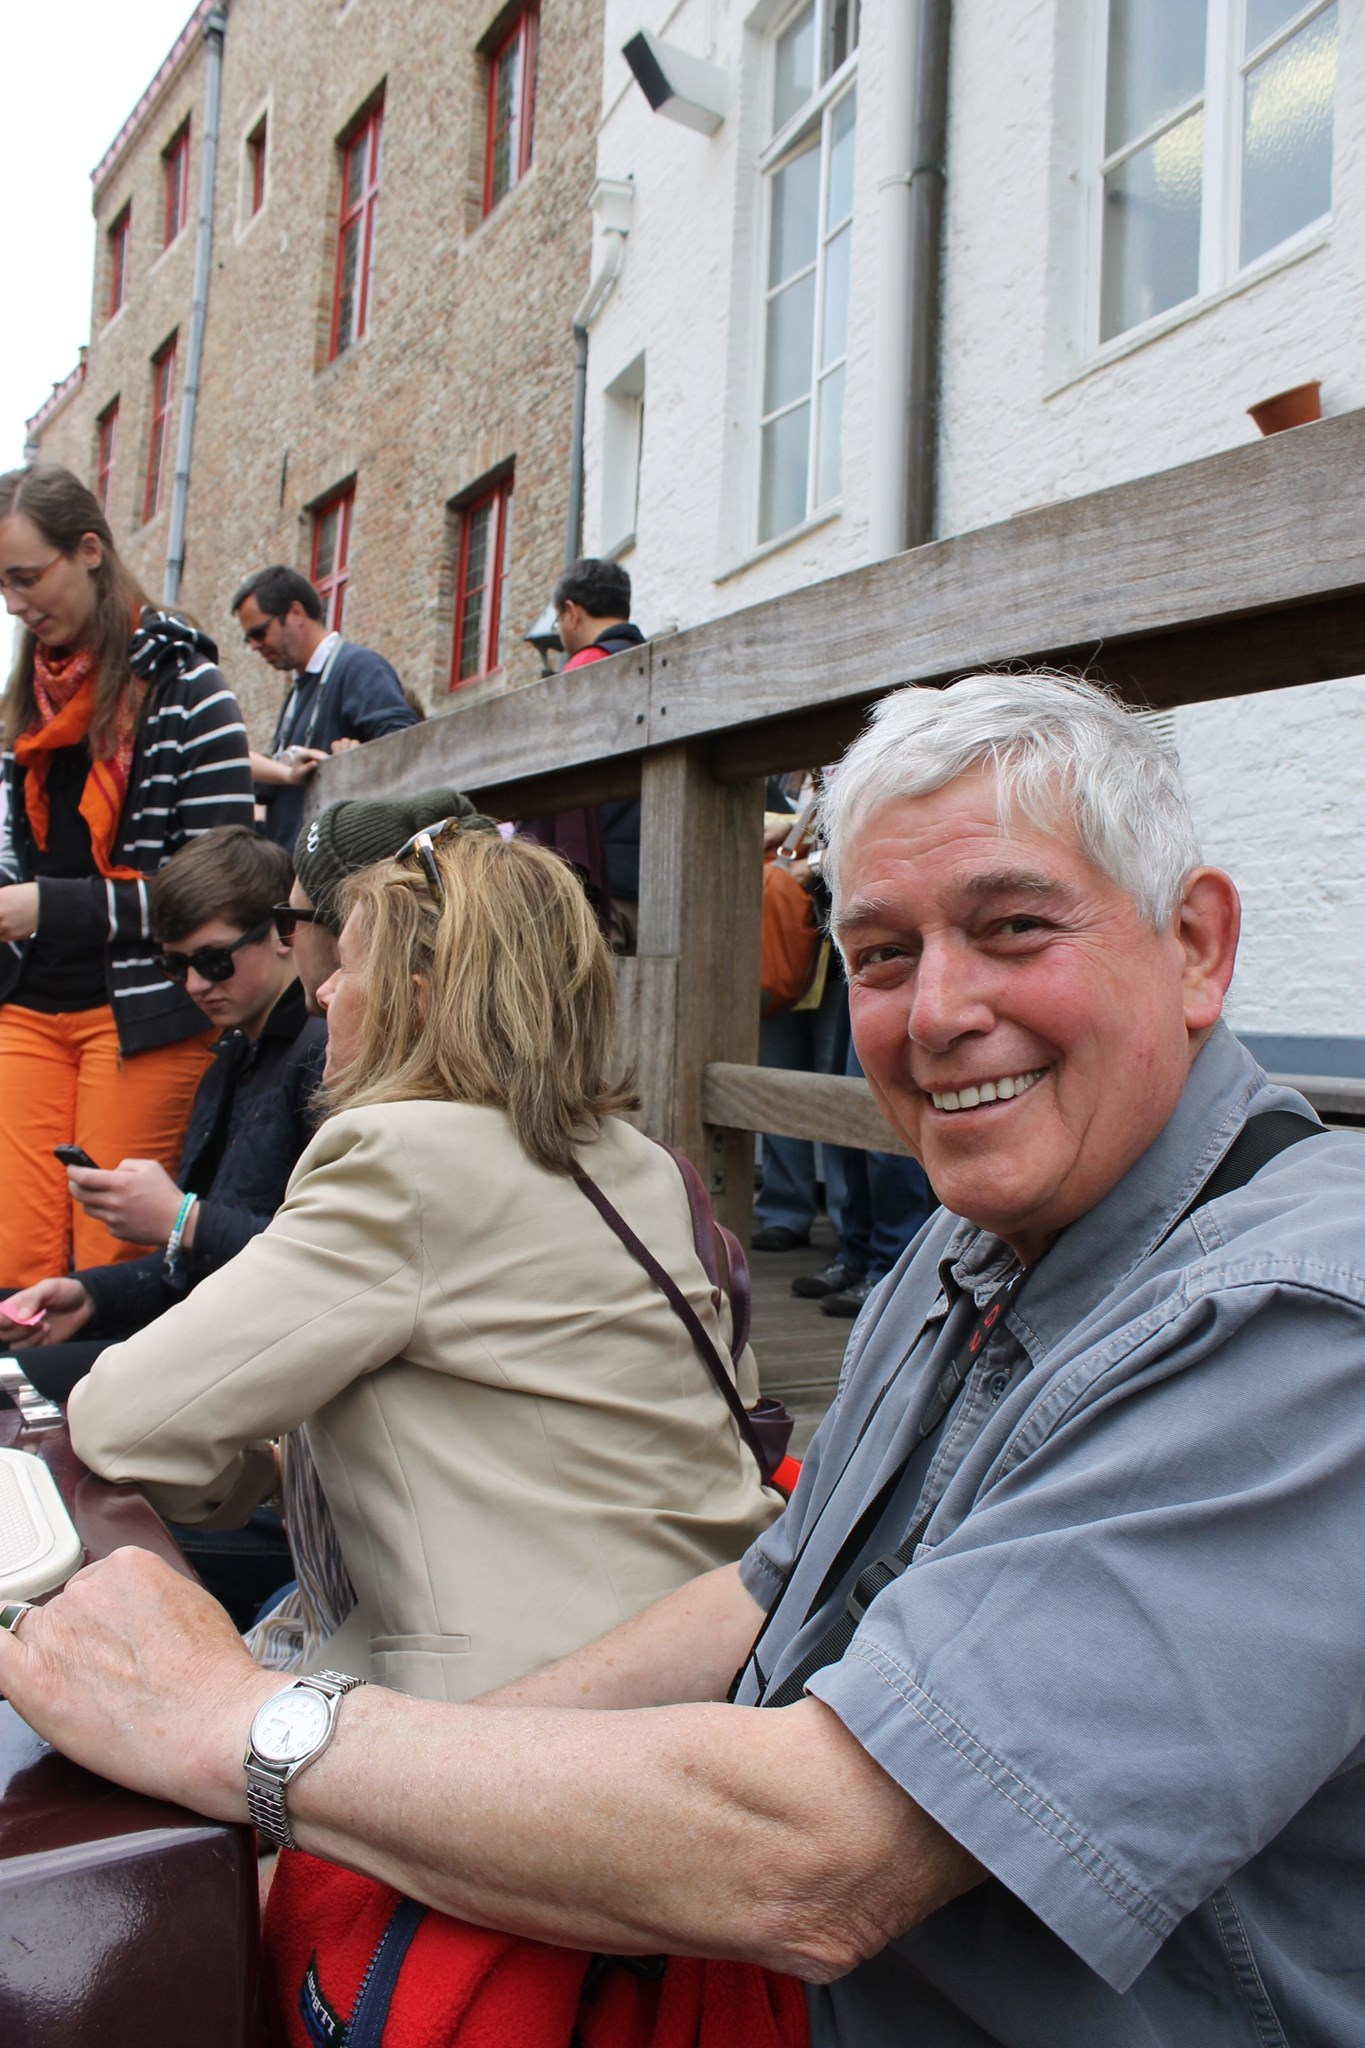 Dad on boat trip in Bruges - 29th May 2013